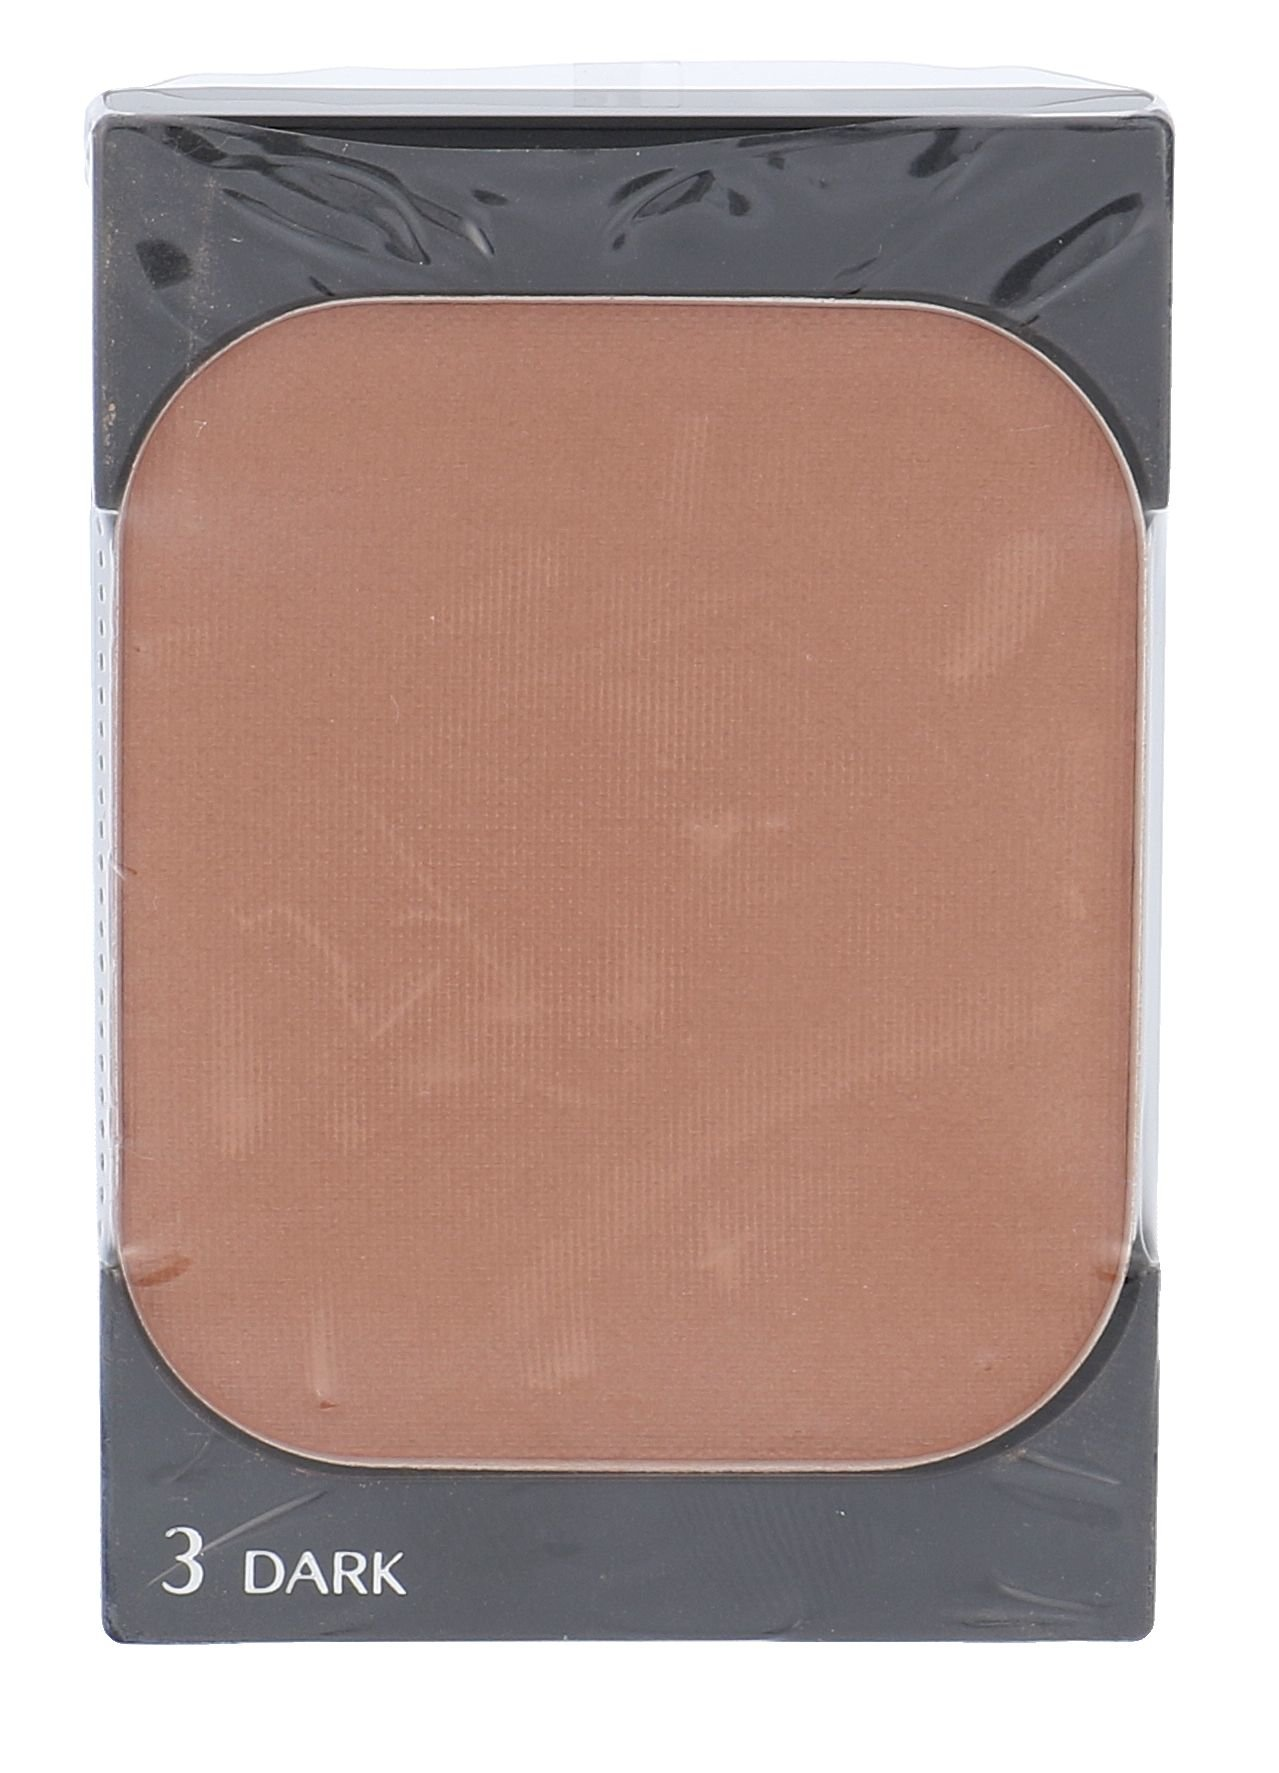 Shiseido Bronzer Cosmetic 12ml 3 Dark